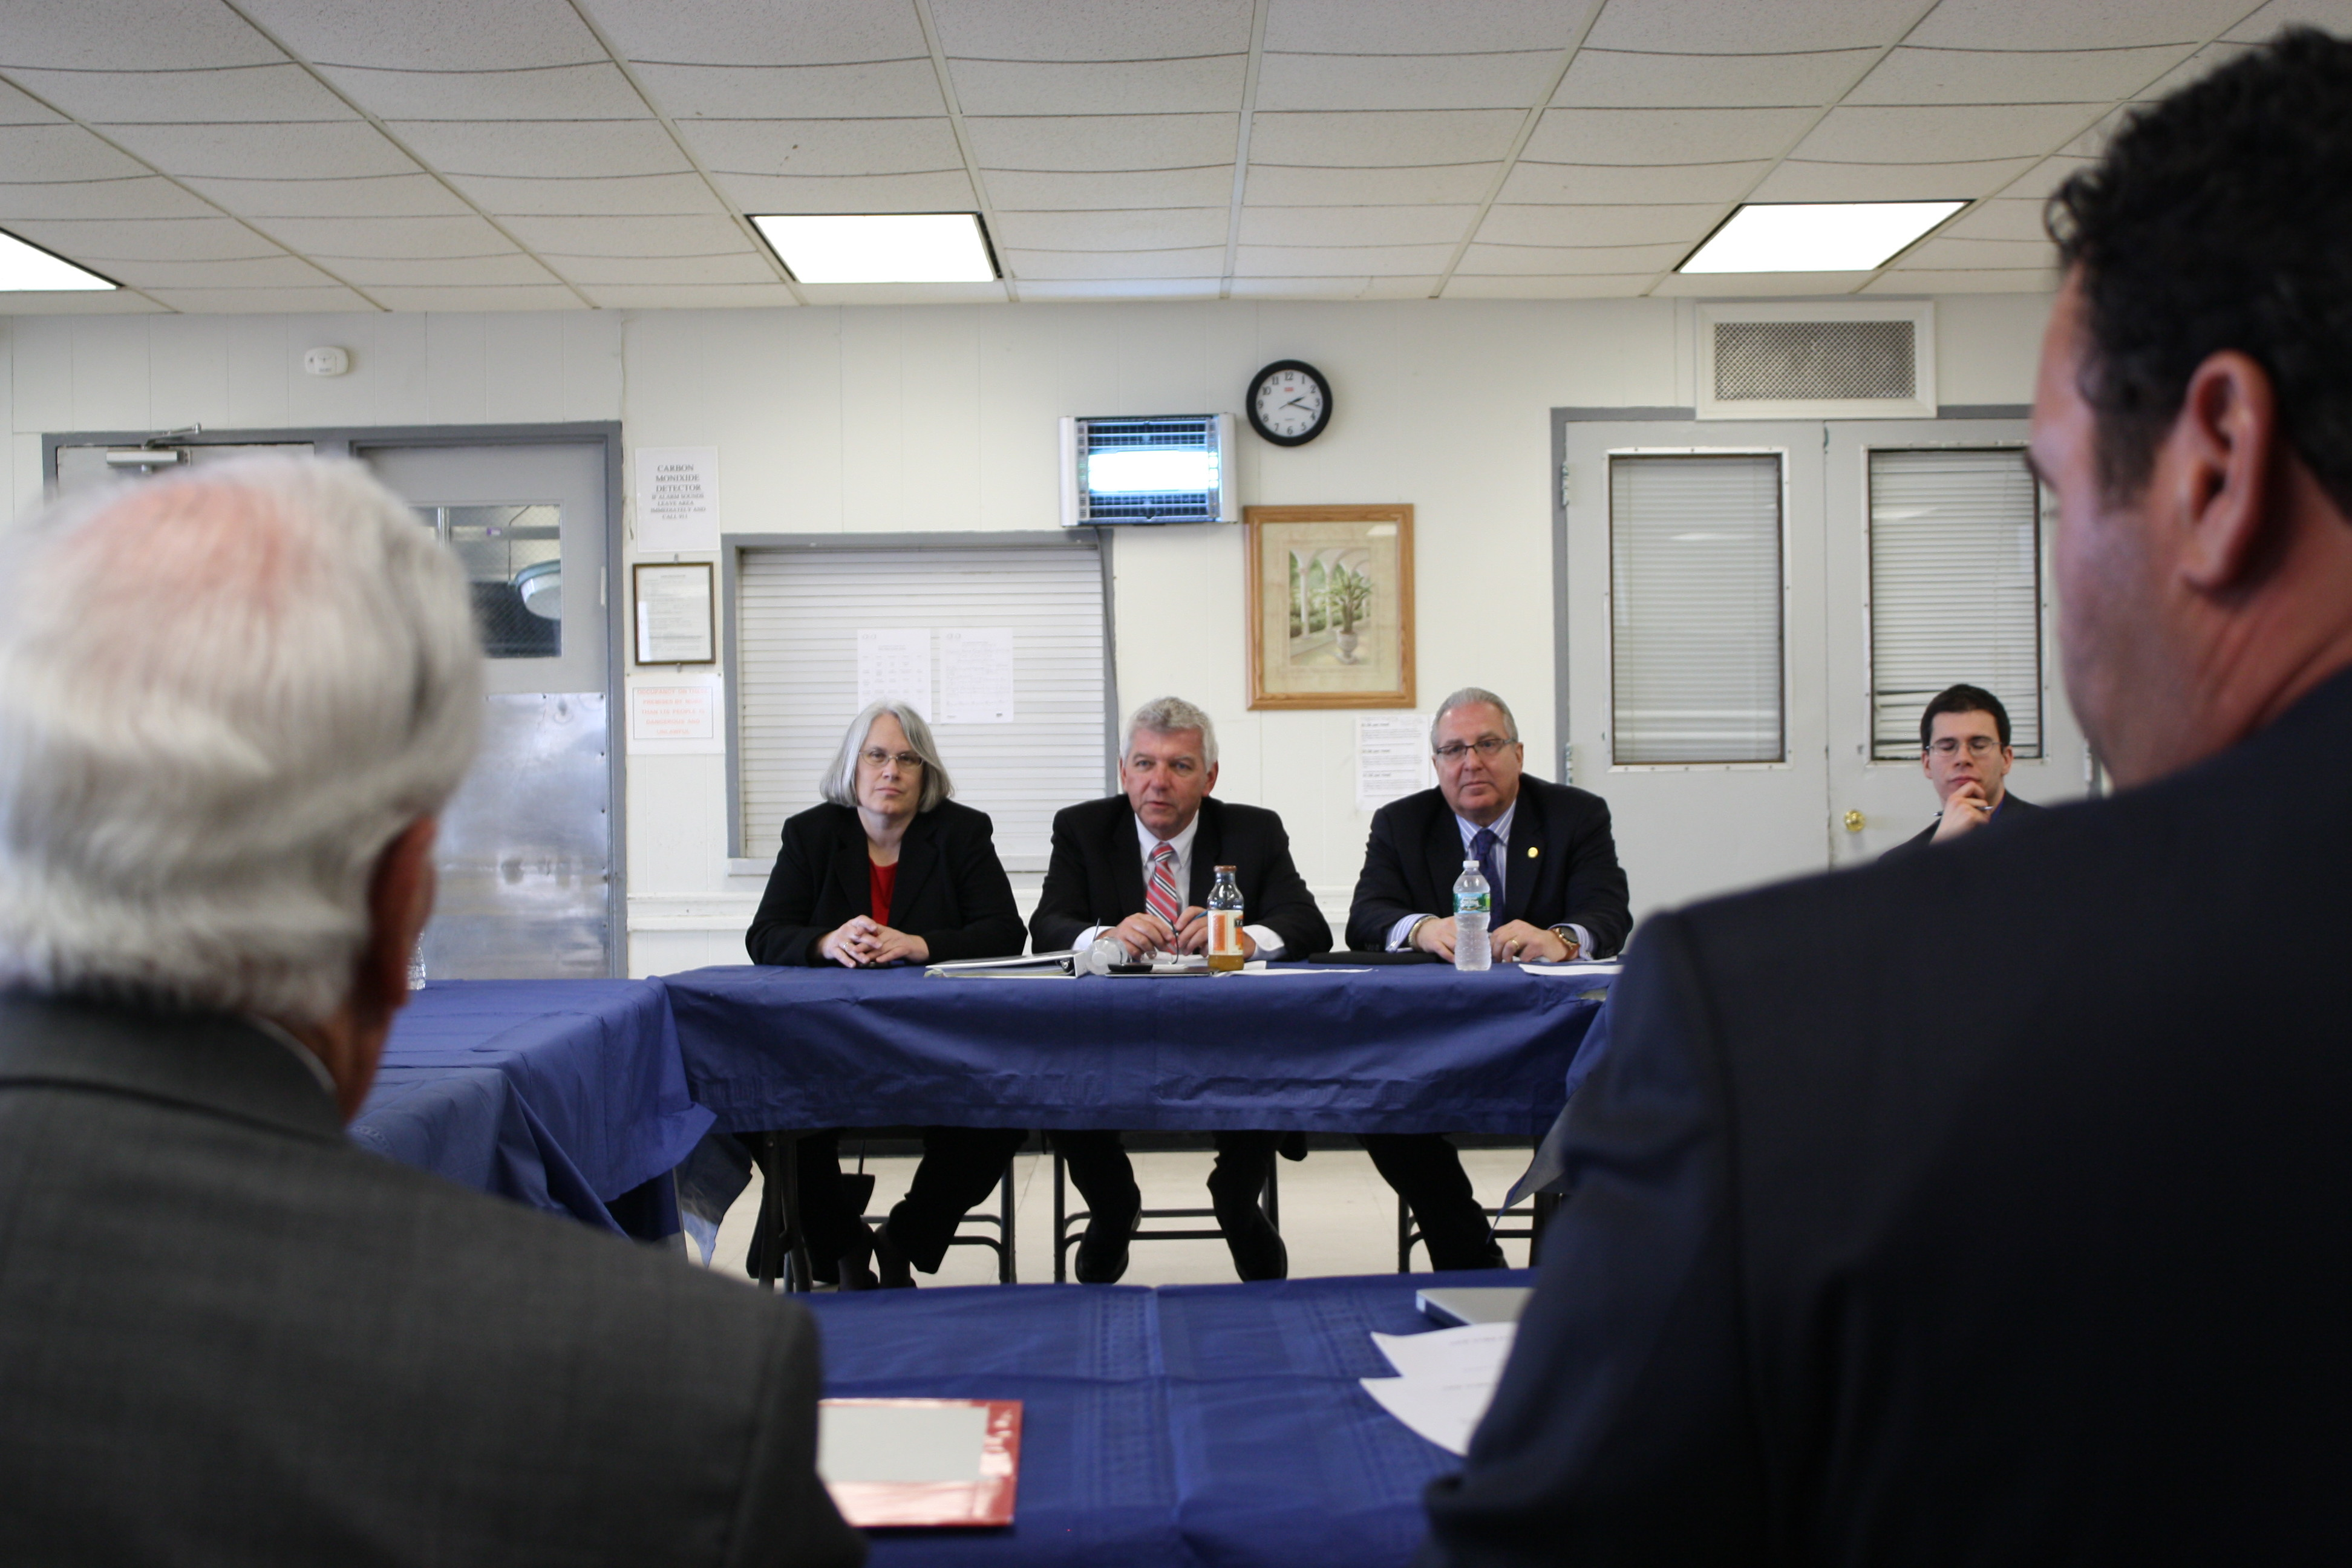 Assembly Insurance Committee Chair Kevin Cahill conducts a roundtable discussion on insurance issues in the wake of Superstorm Sandy alongside Assemblymember Steven Cymbrowitz (right) and Assemblymember Helene Weinstein (left).